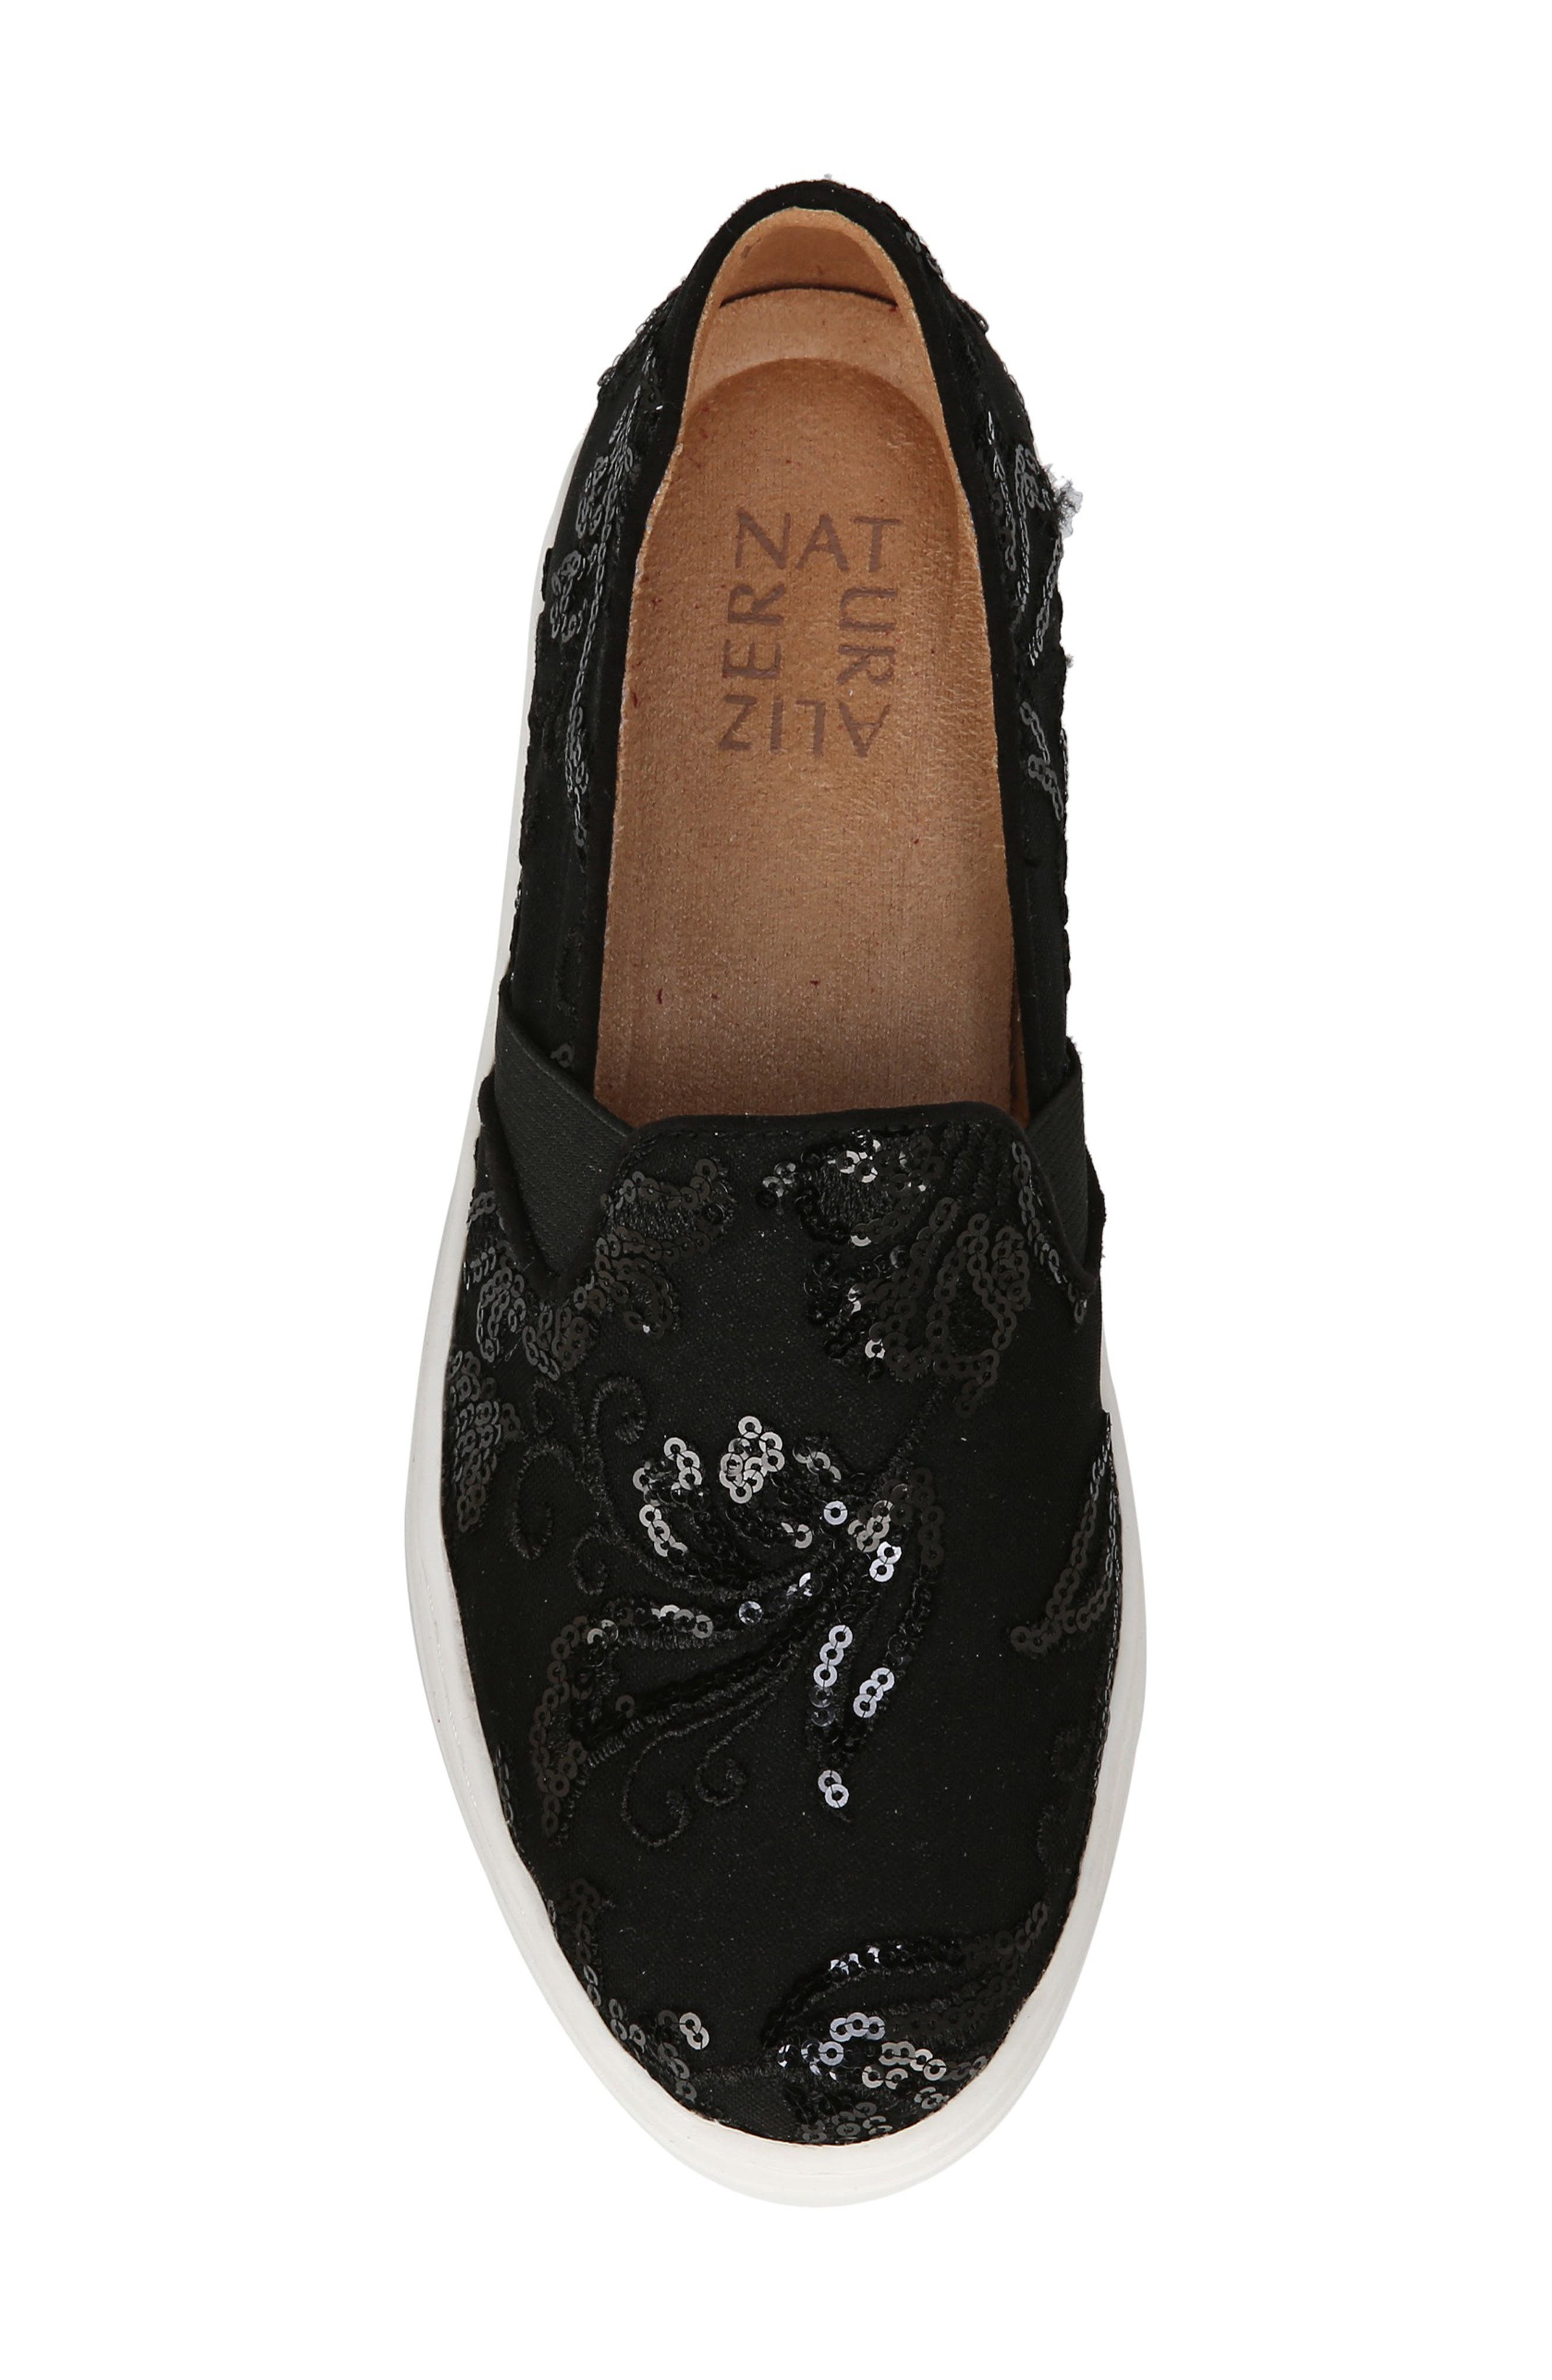 NATURALIZER, Carly Slip-On Sneaker, Alternate thumbnail 5, color, BLACK EMBROIDERED LACE